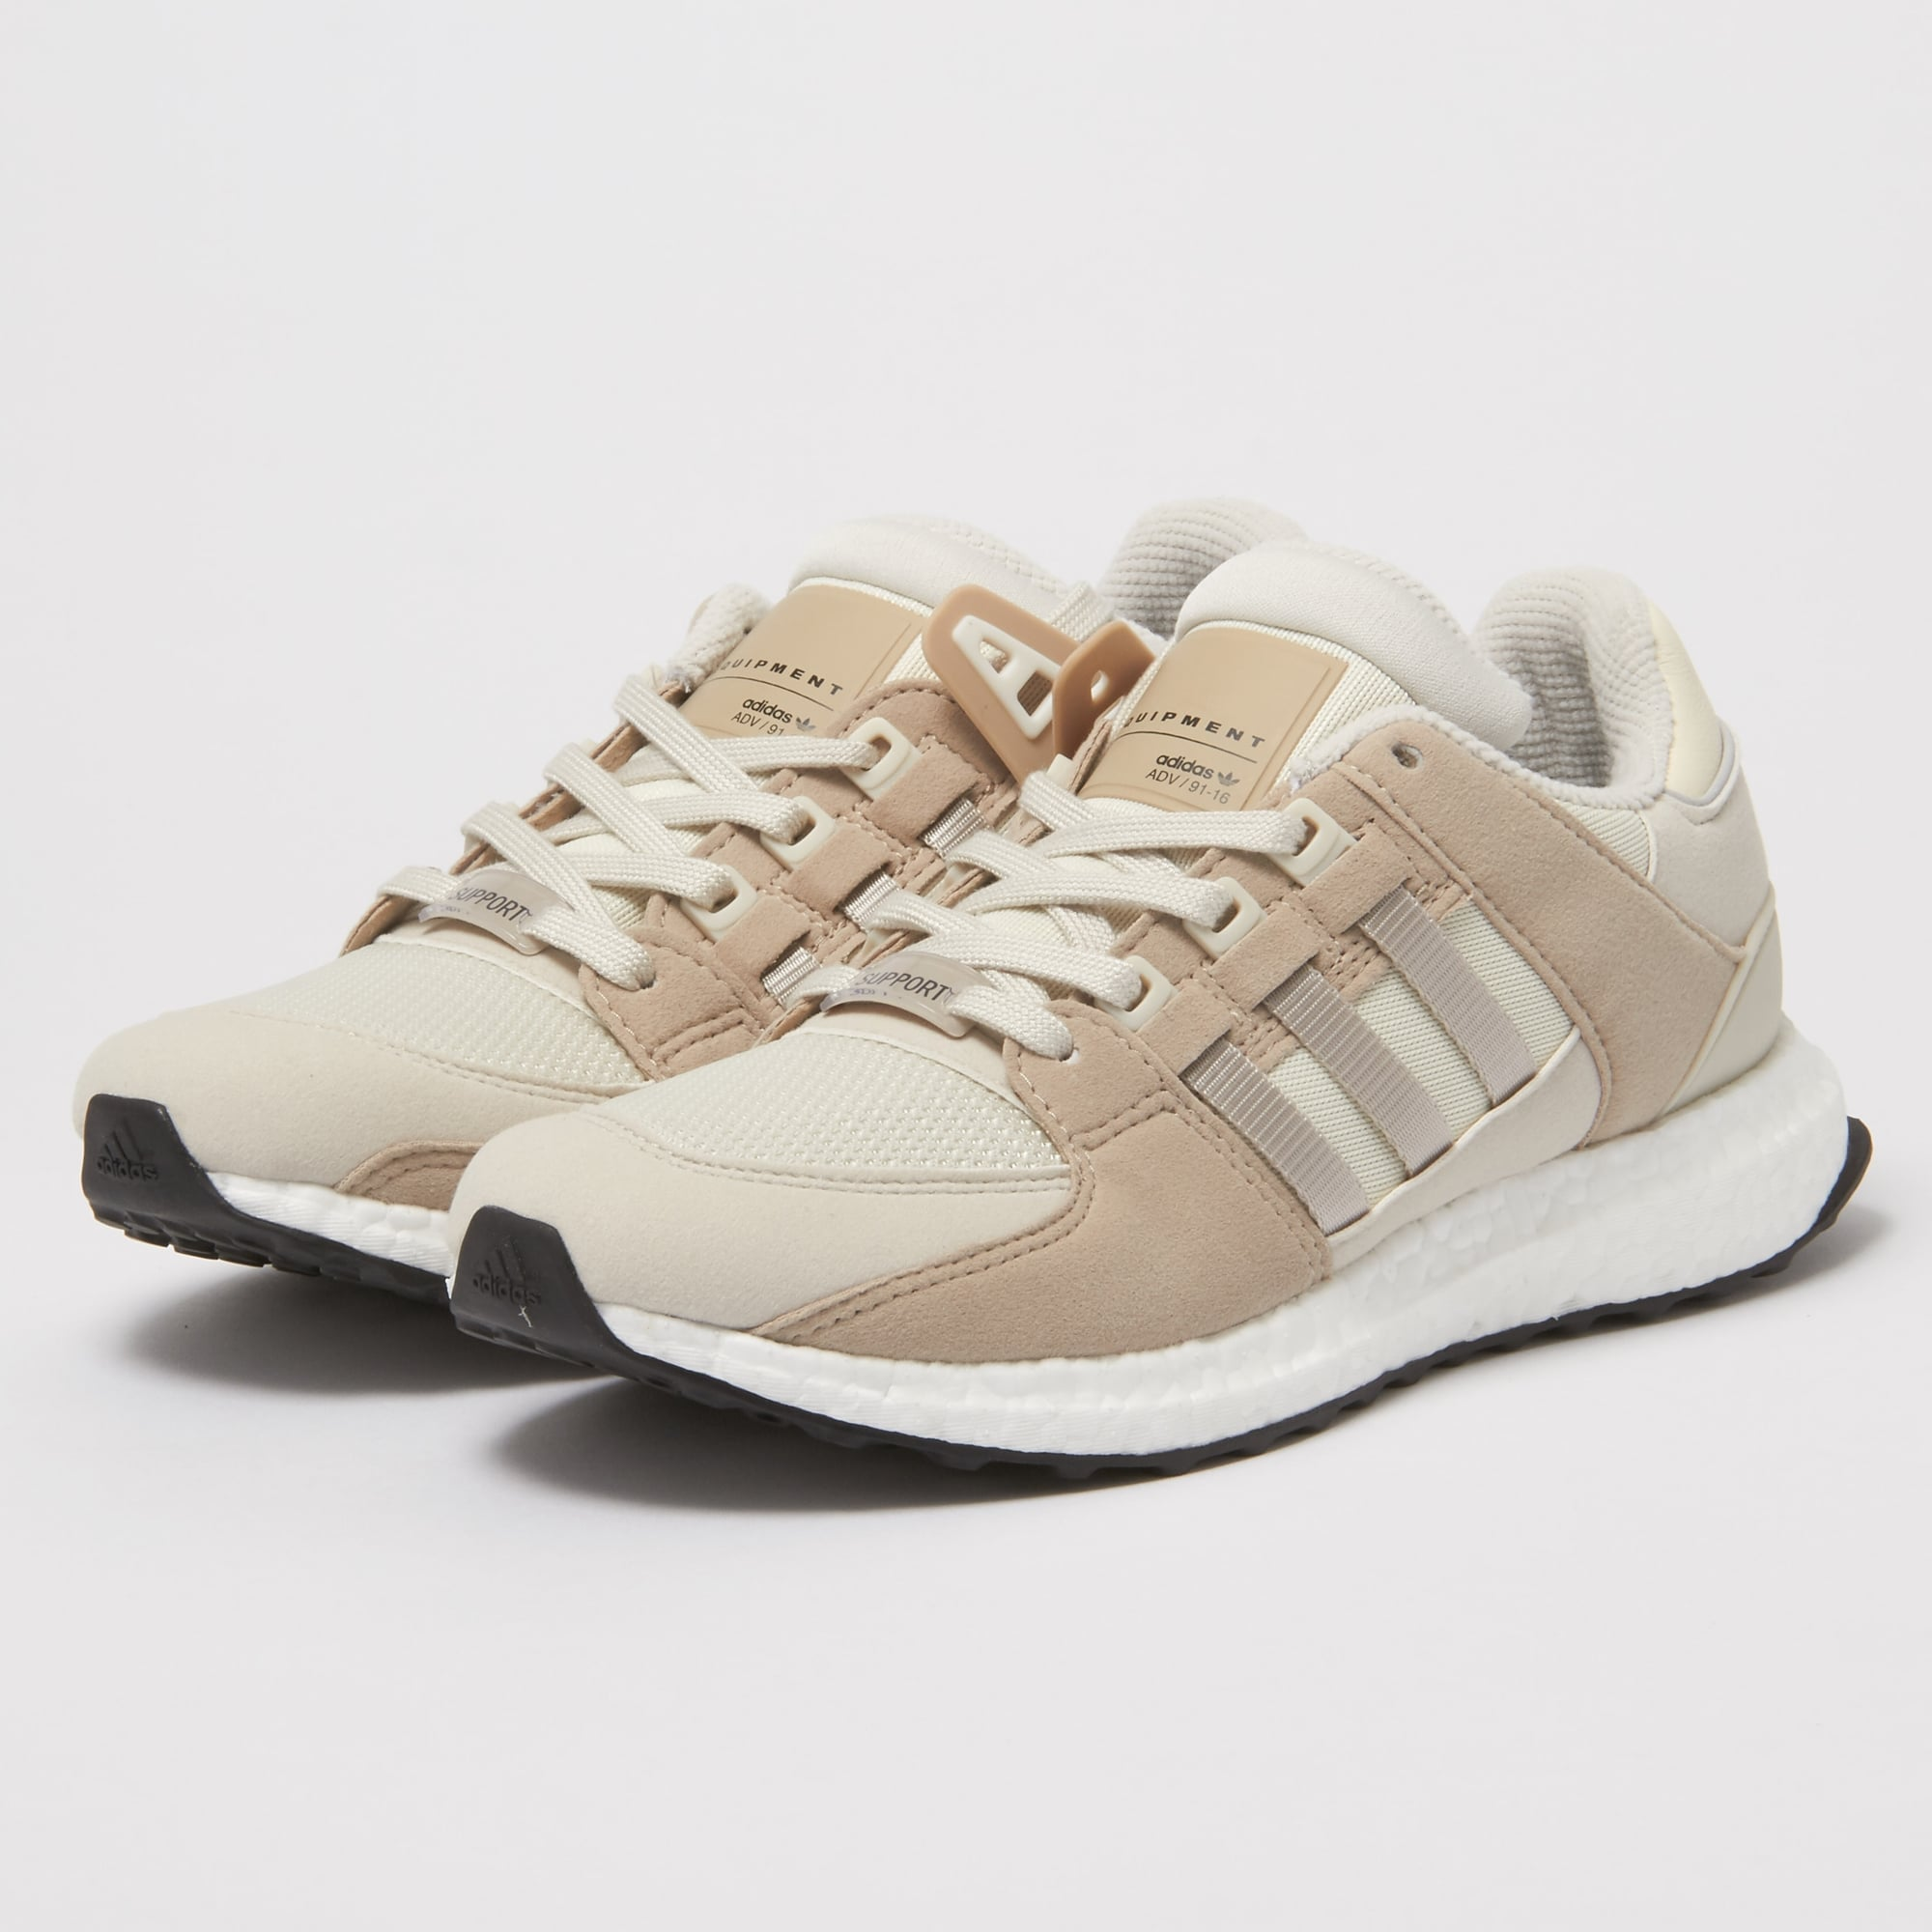 adidas usa stockist eqt support ultra beige shoes bb1239. Black Bedroom Furniture Sets. Home Design Ideas